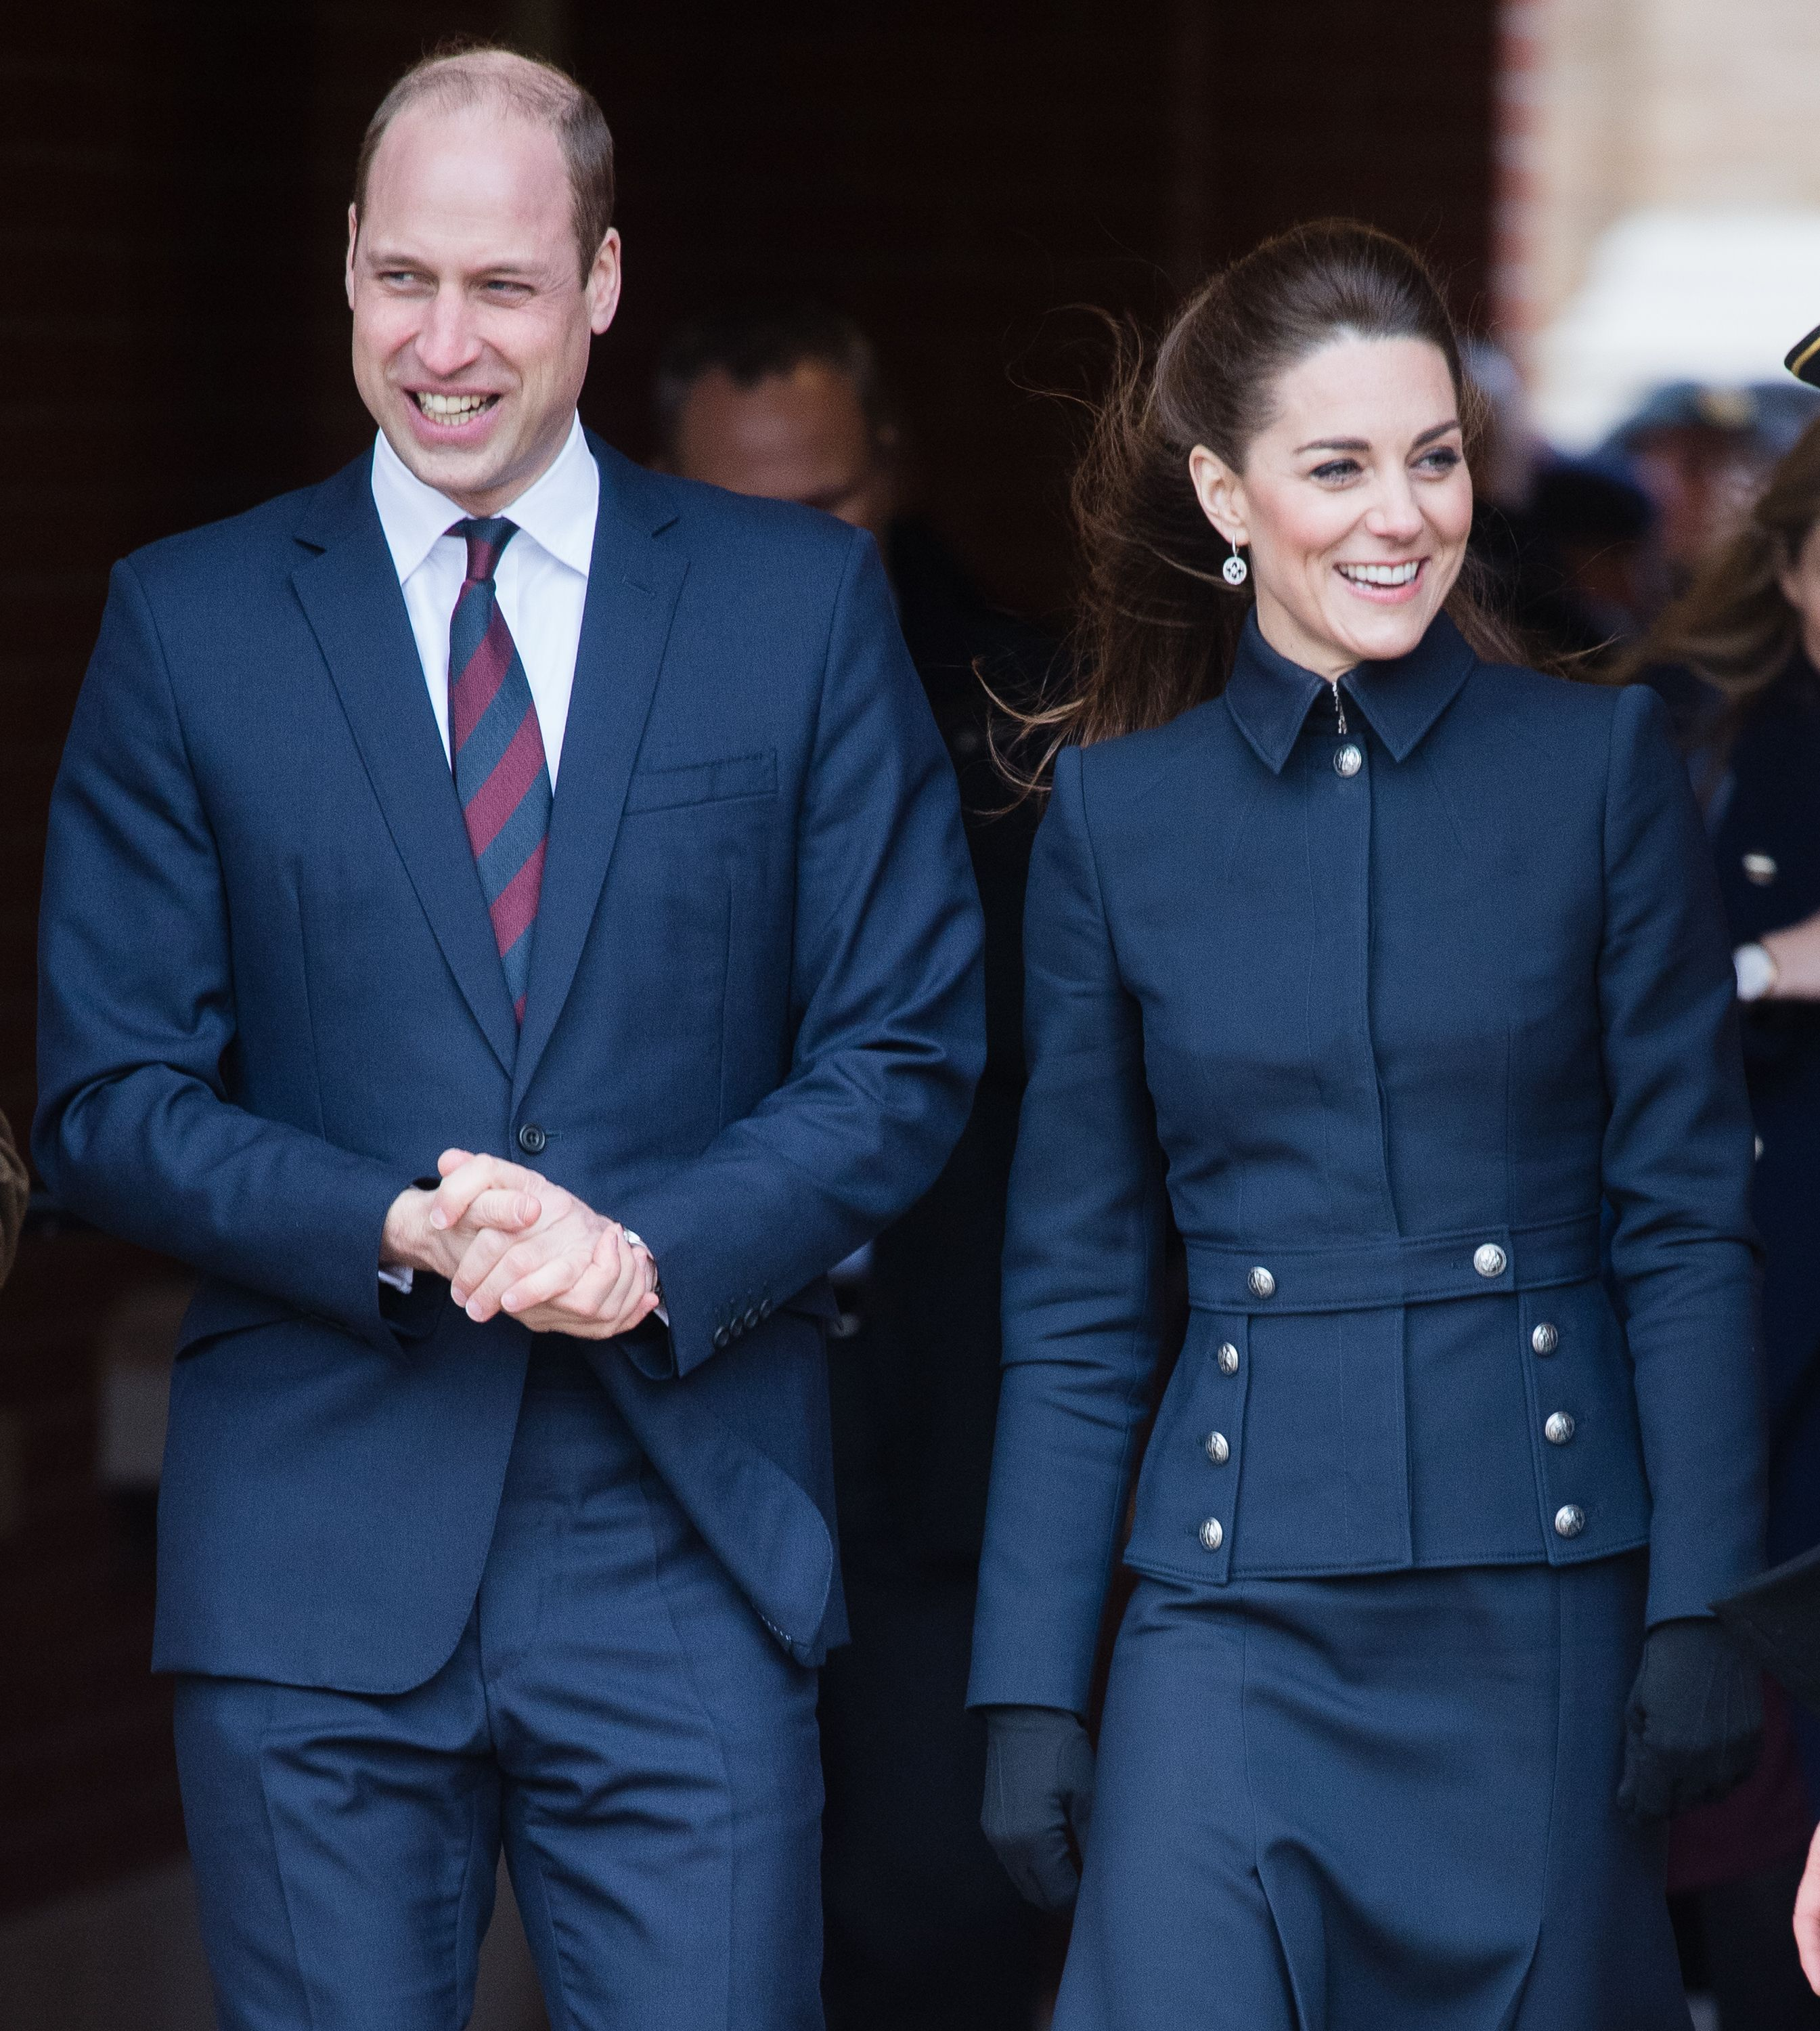 Why Kate Middleton and Prince William Are Pressing Pause on Their Royal Duties